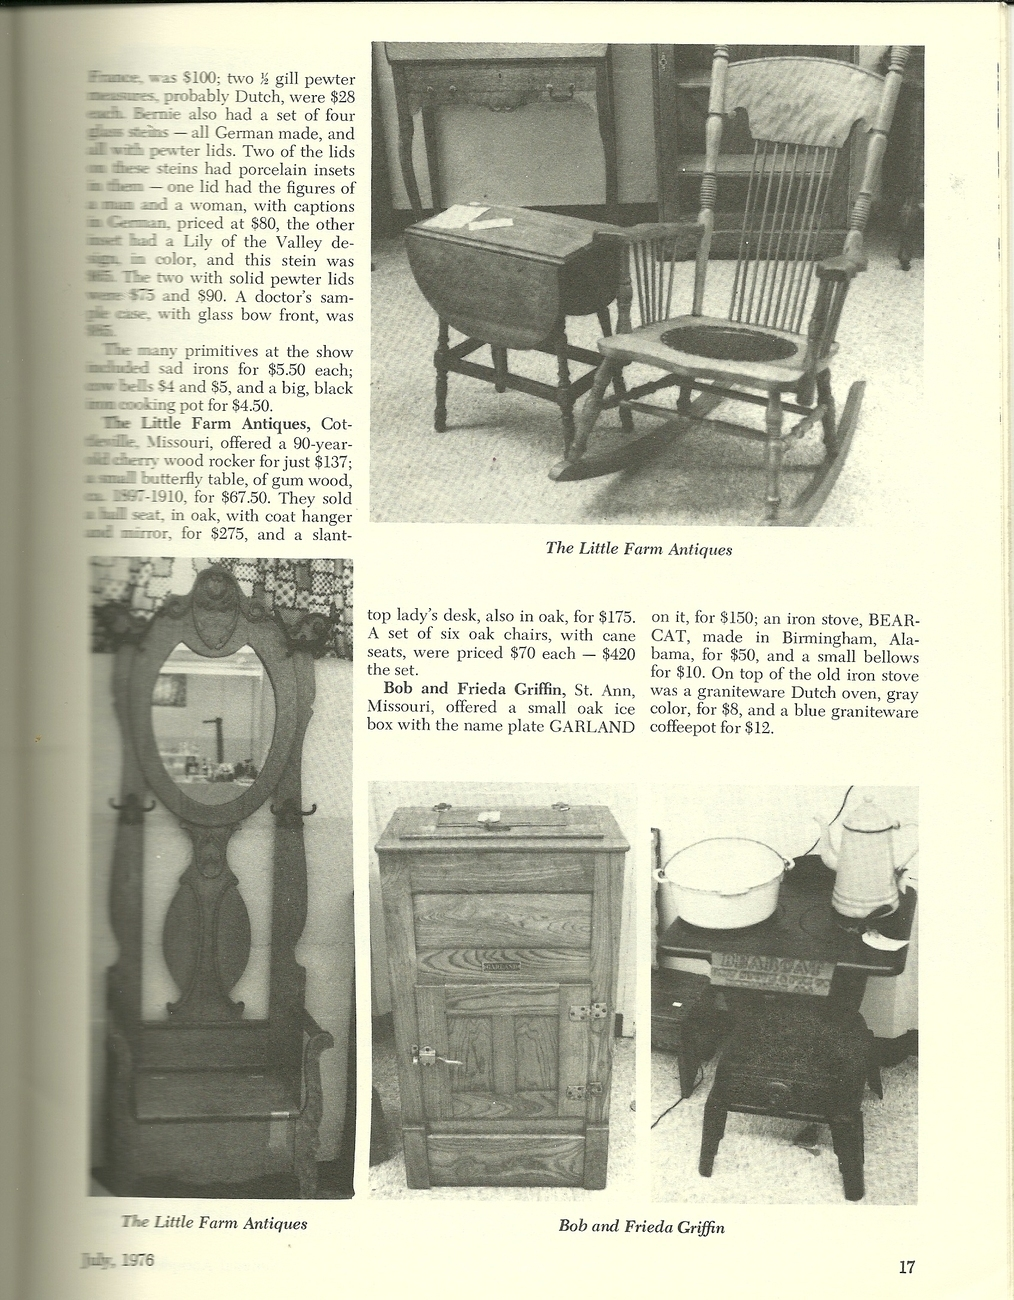 National Antiques Review Magazine July 1976 Volume VIII Number 1